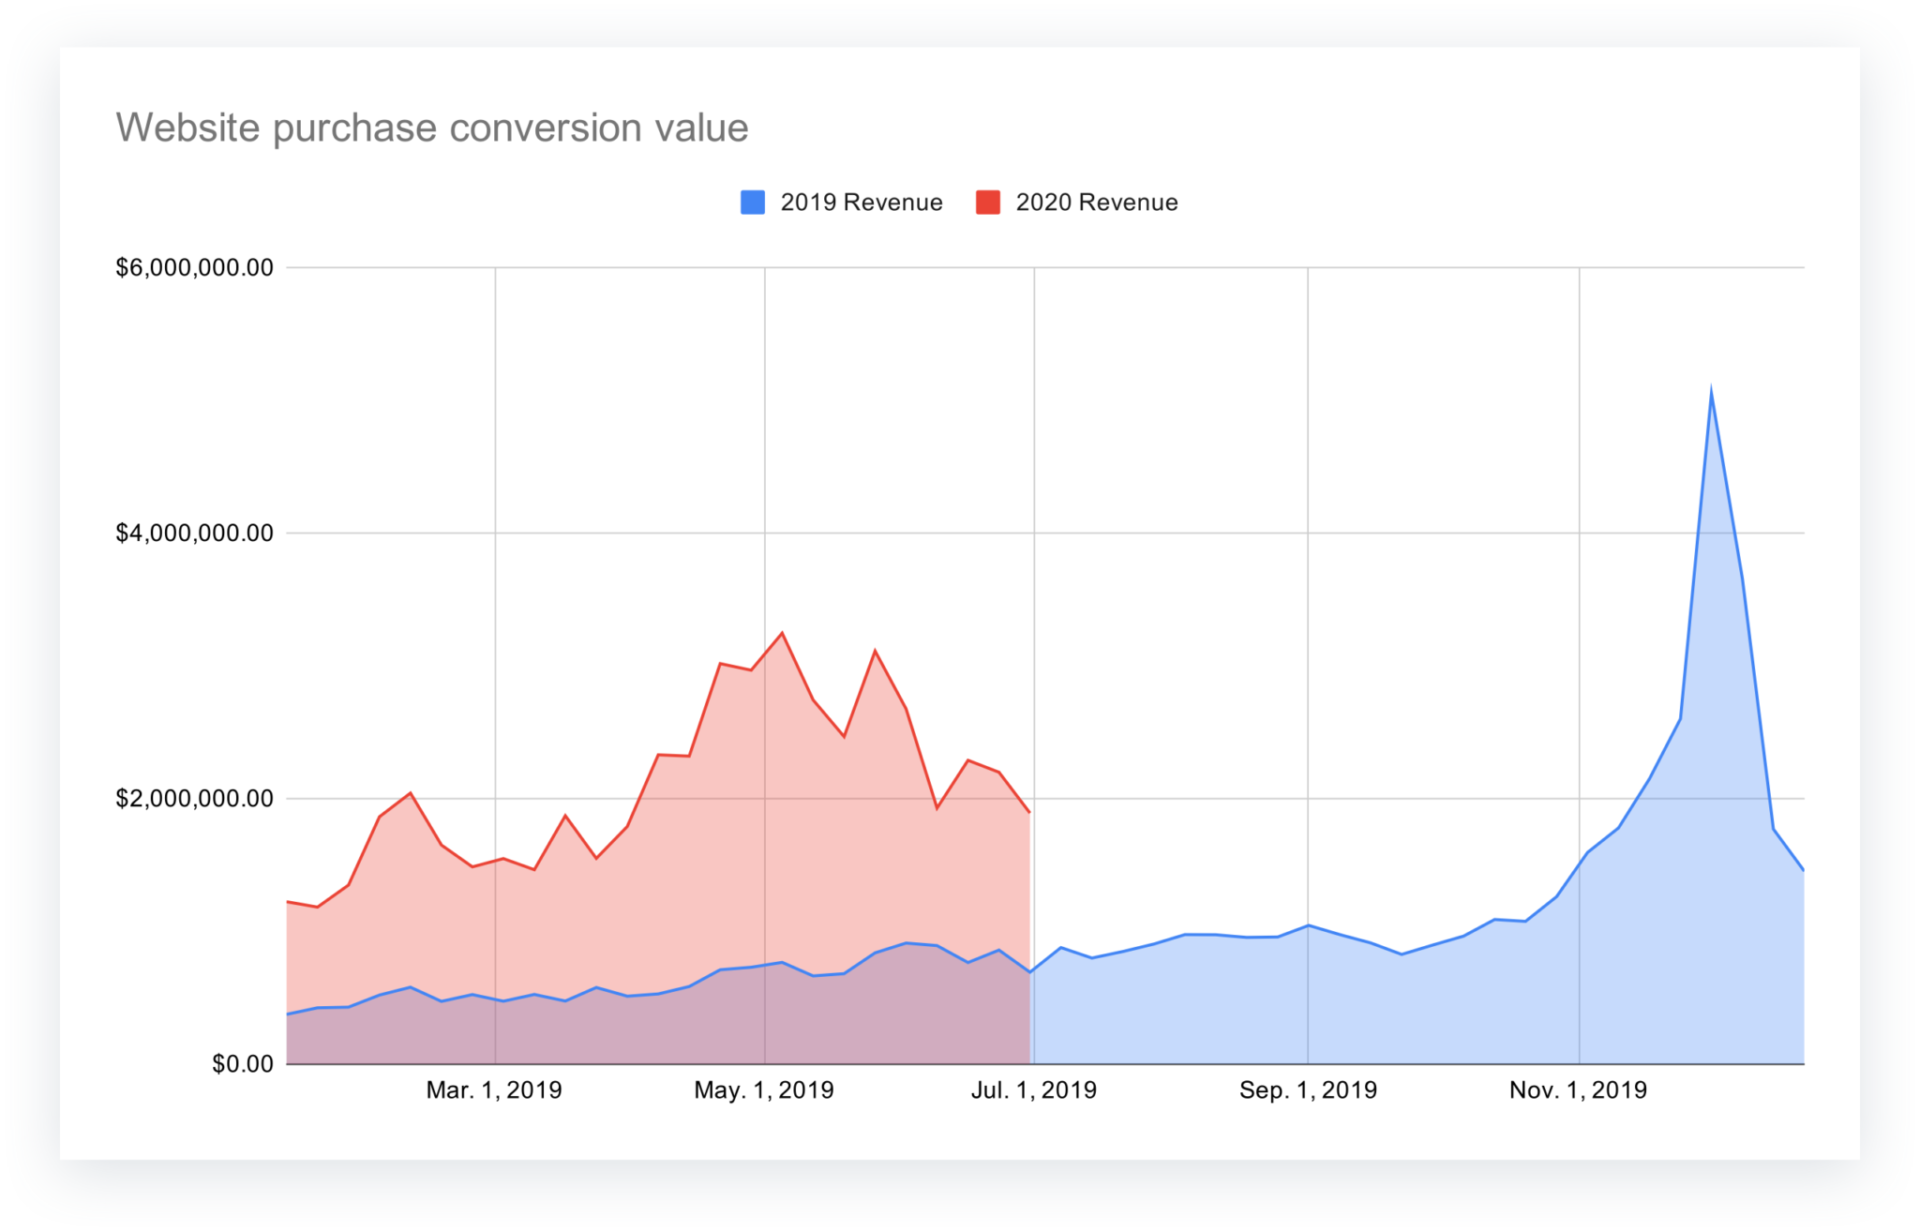 Website purchase conversion value data